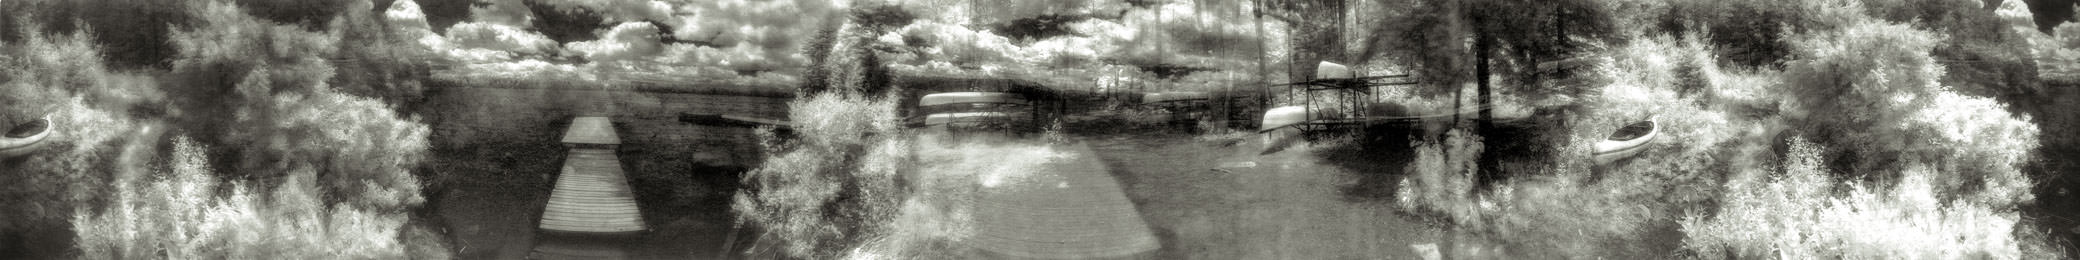 """""""Departure Point """" from the series Footprints, by William Mokrynski"""